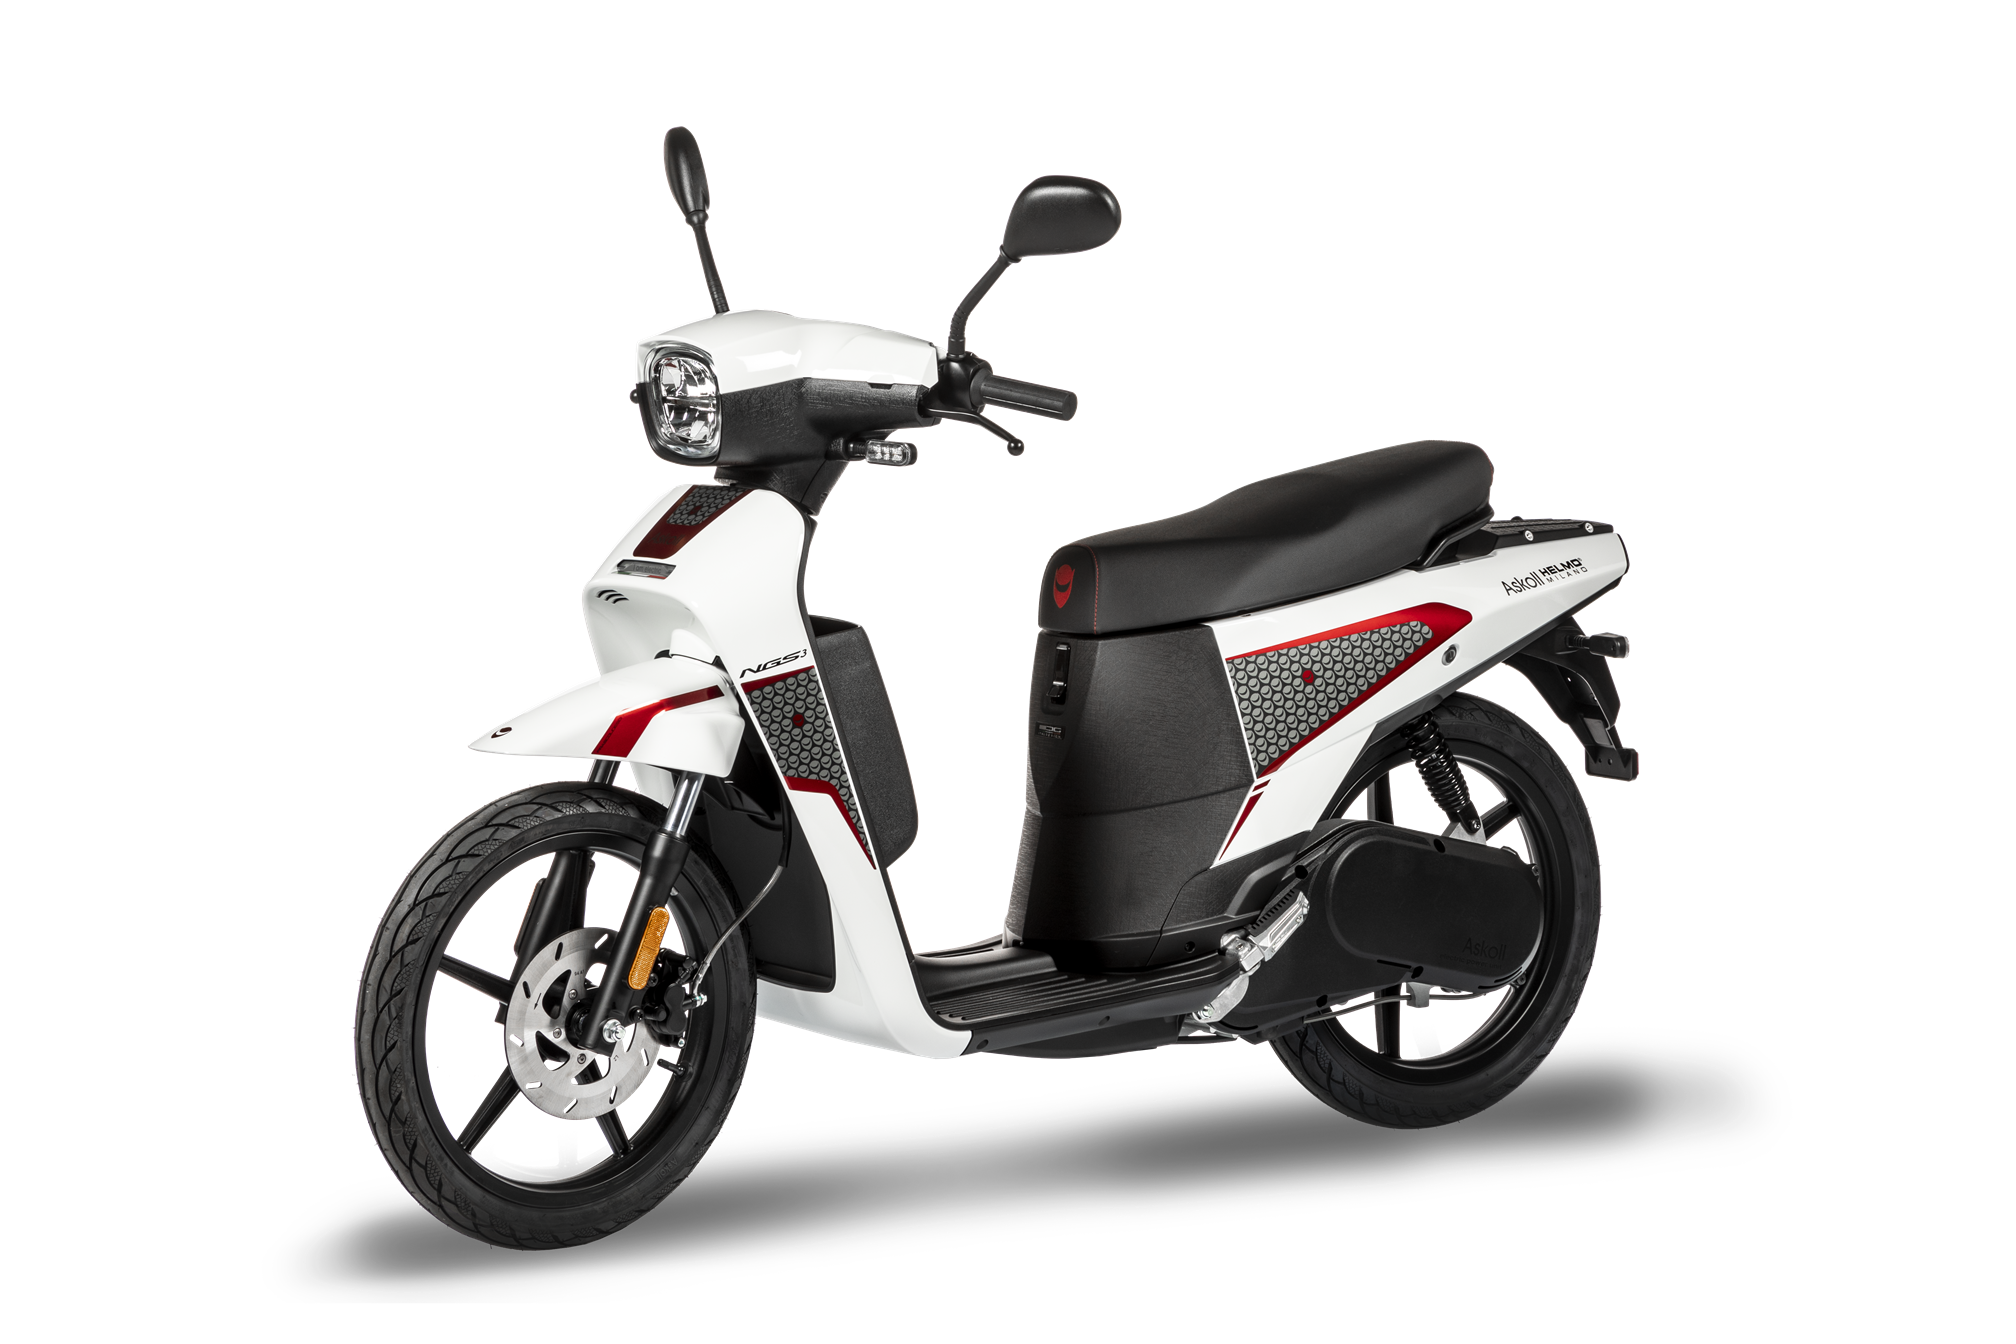 Askool Scooter Ngs3